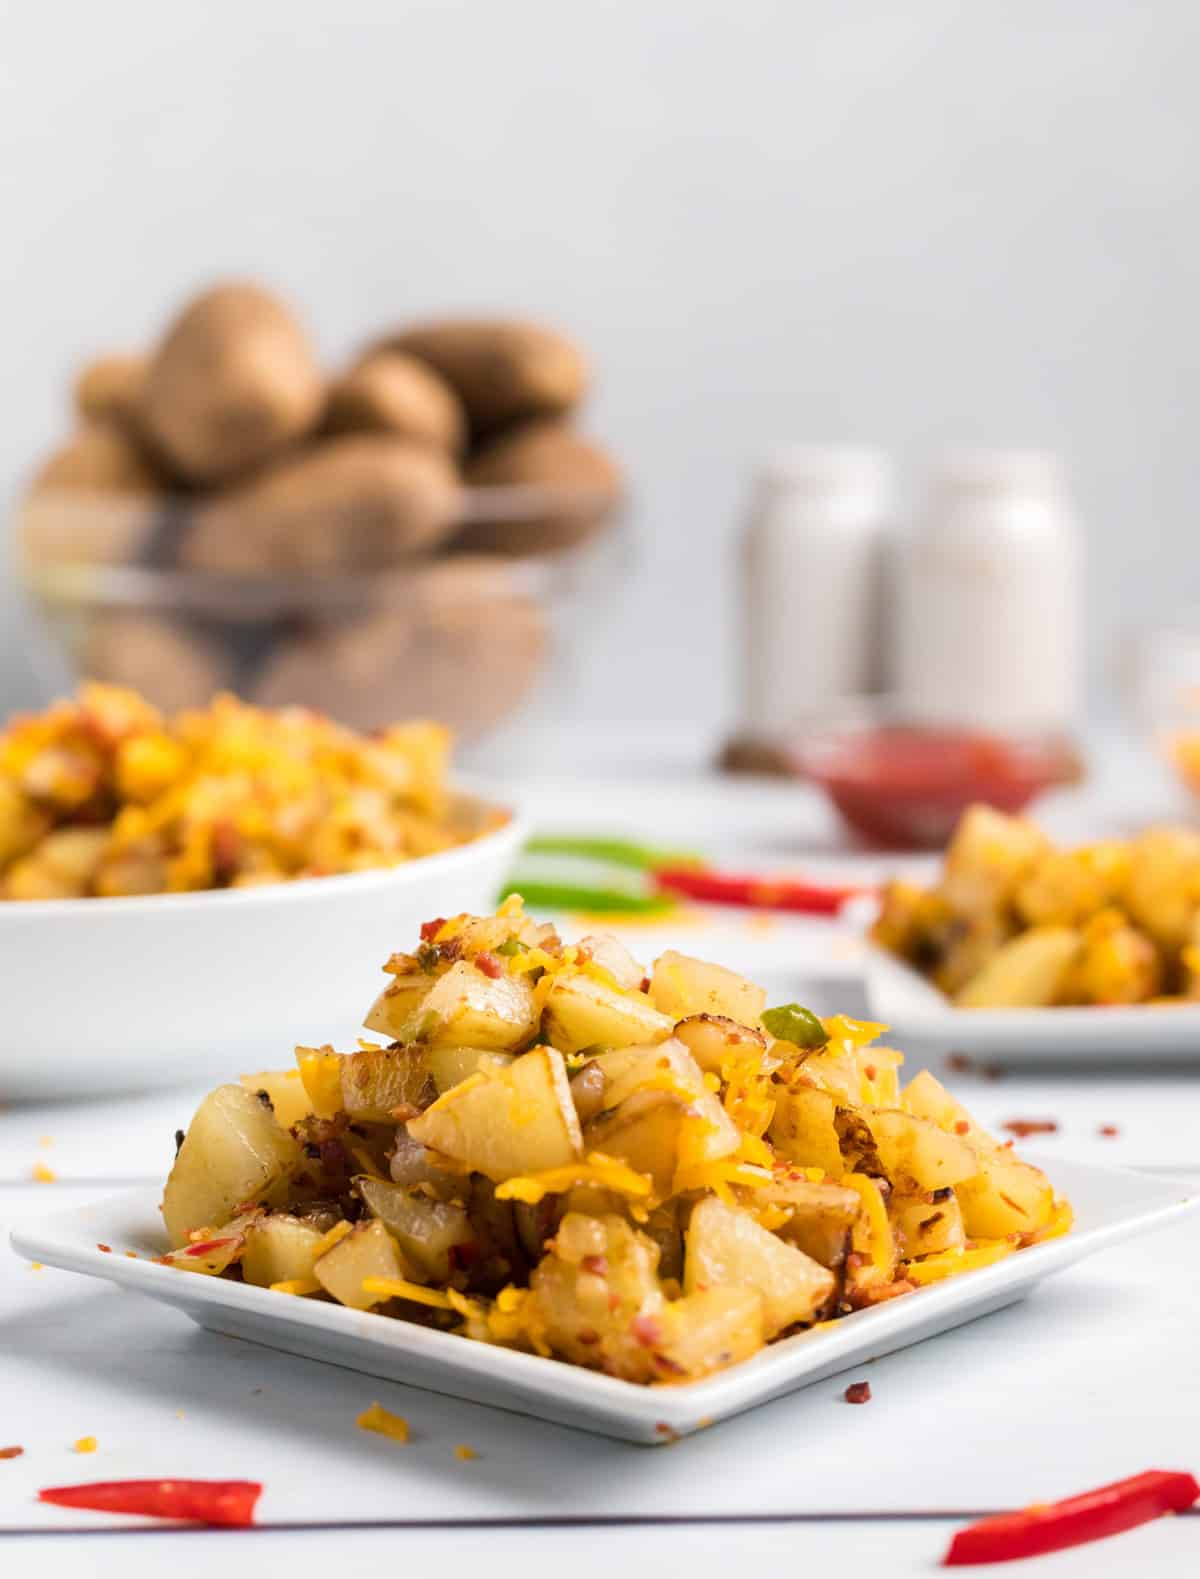 Potatoes on square plate with dish of potatoes in background